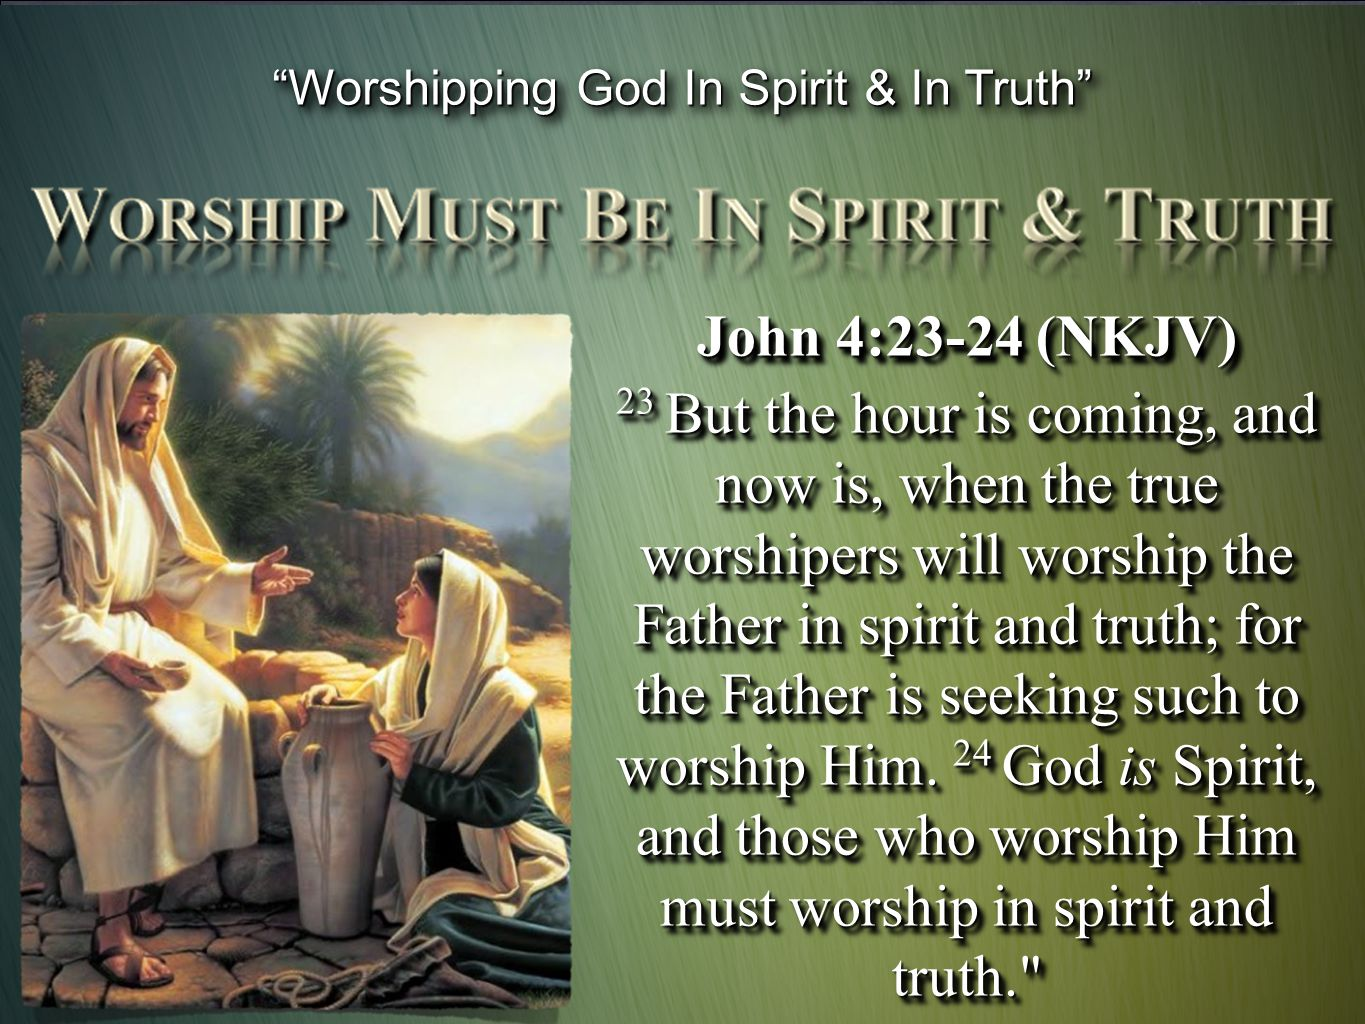 John 4:23-24 (NKJV) 23 But the hour is coming, and now is, when the true worshipers will worship the Father in spirit and truth; for the Father is see